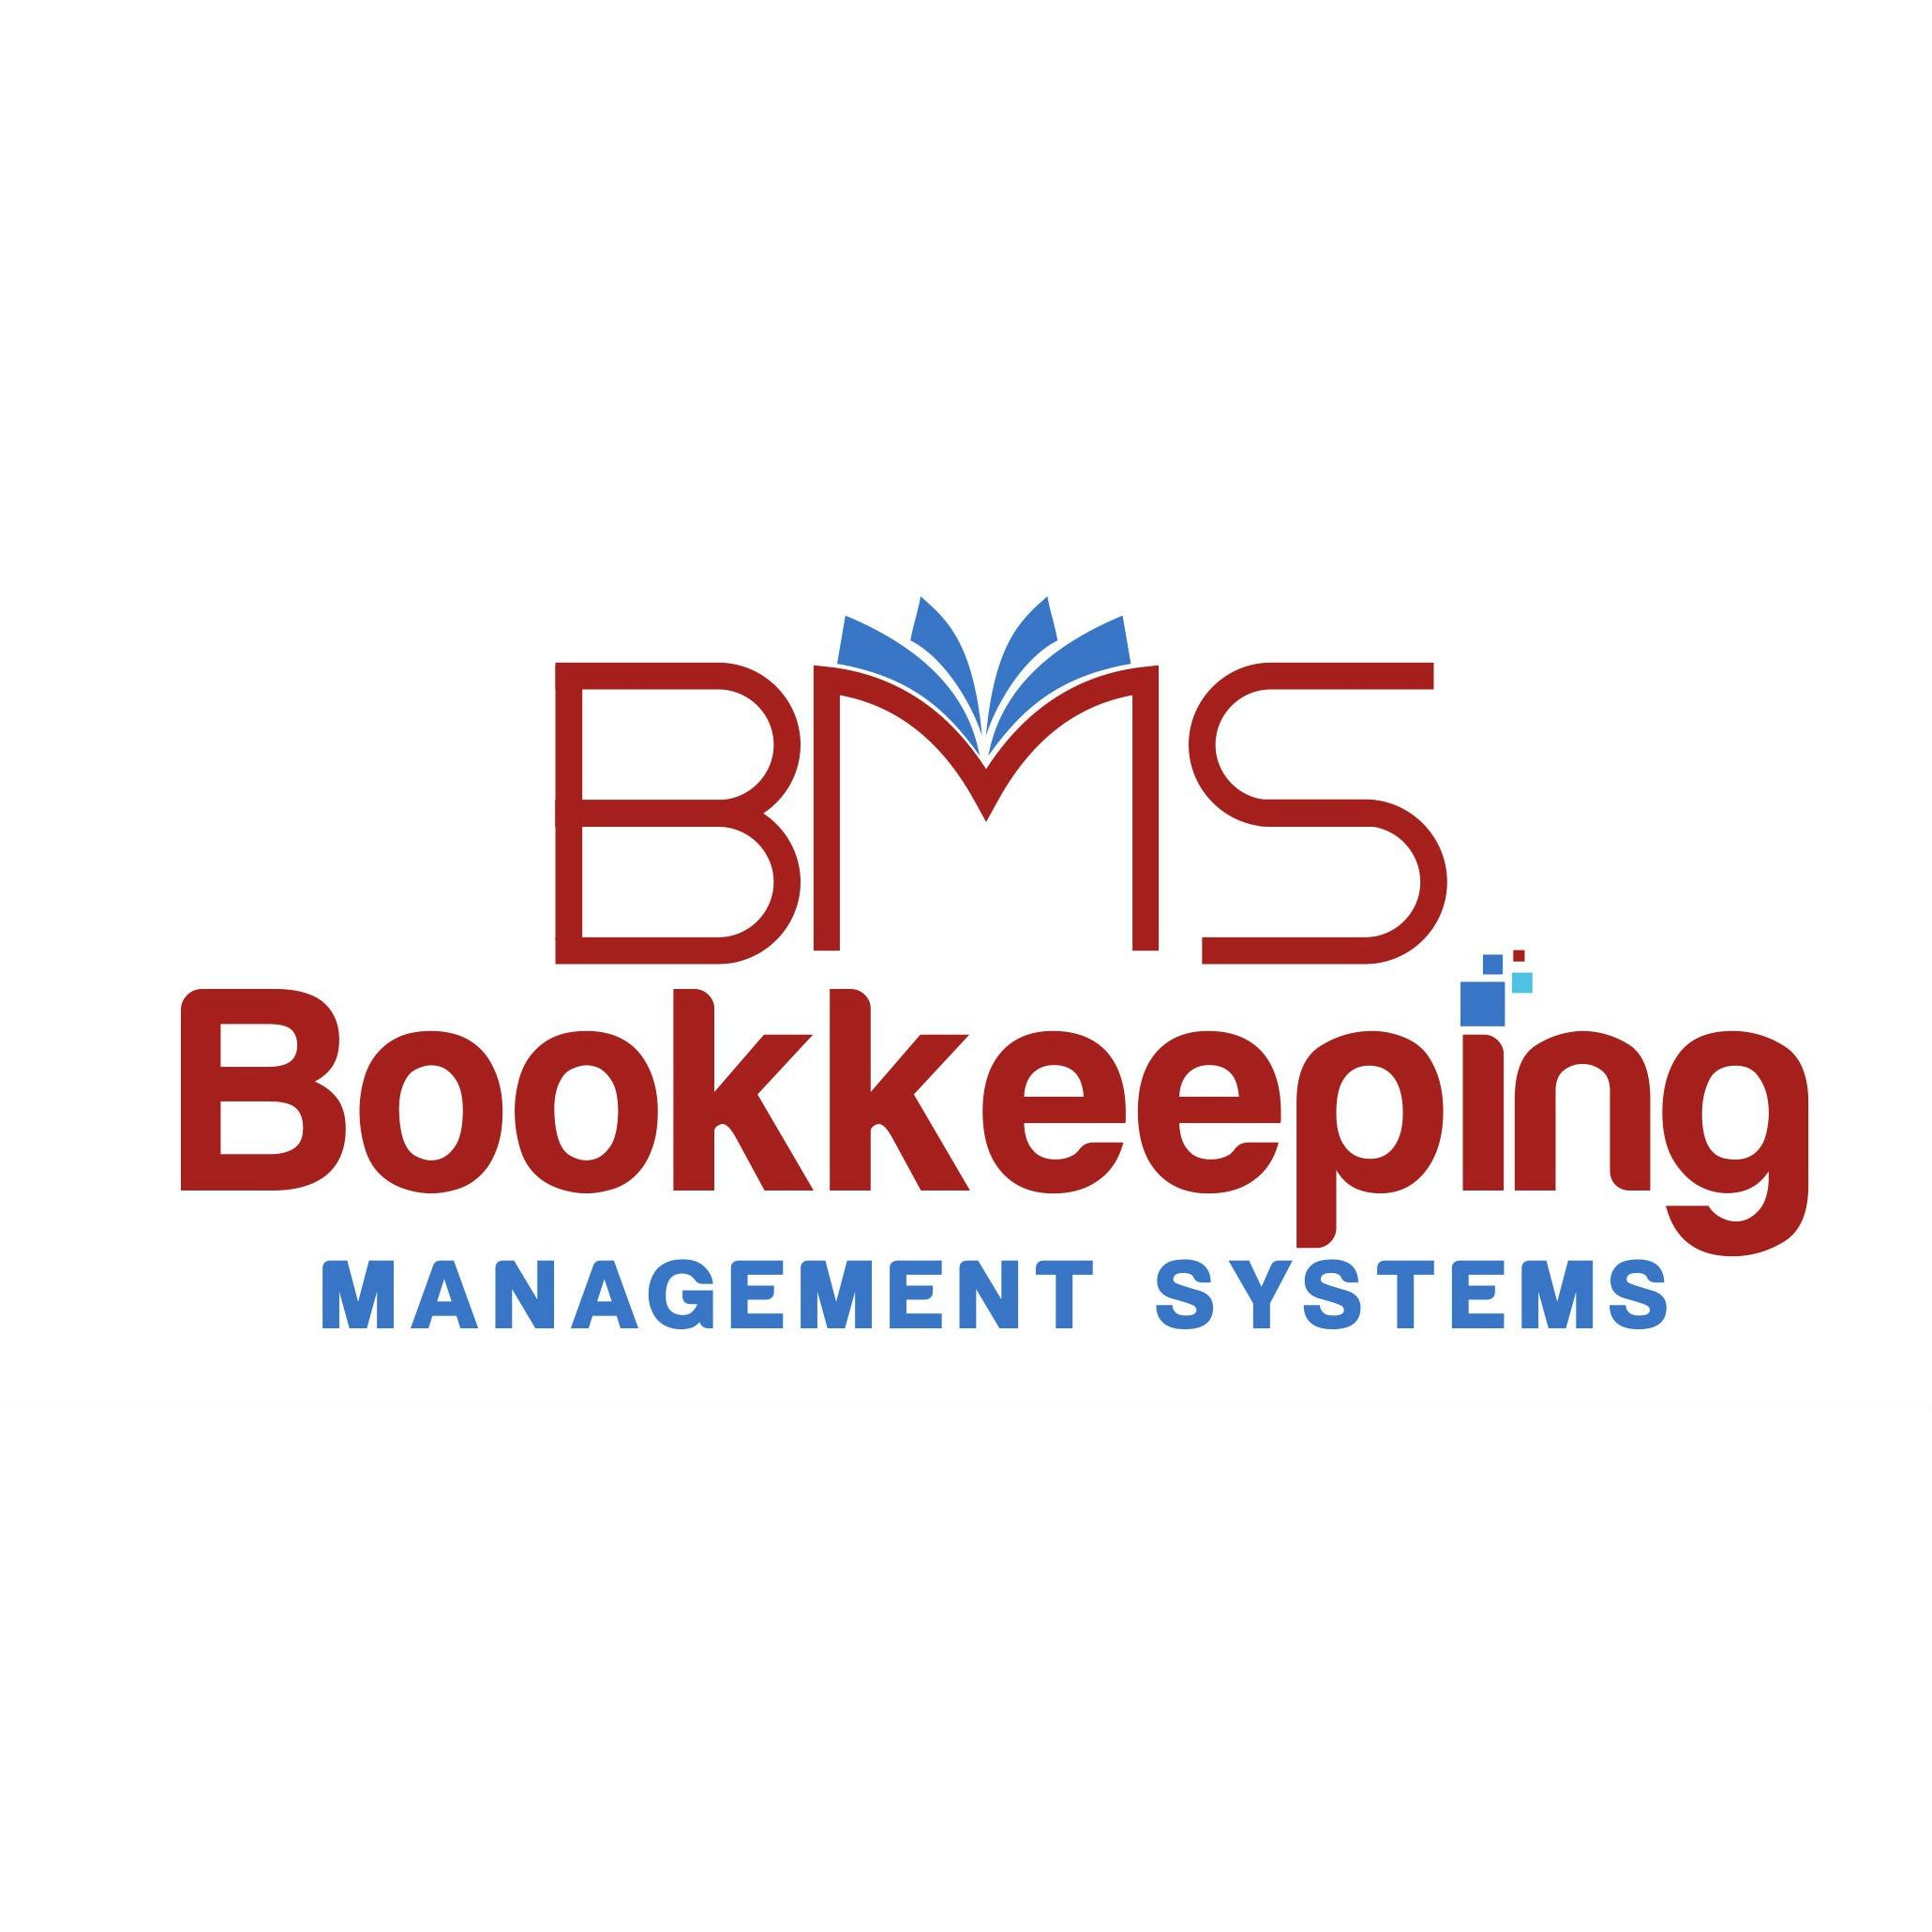 Bookkeeping Management Systems